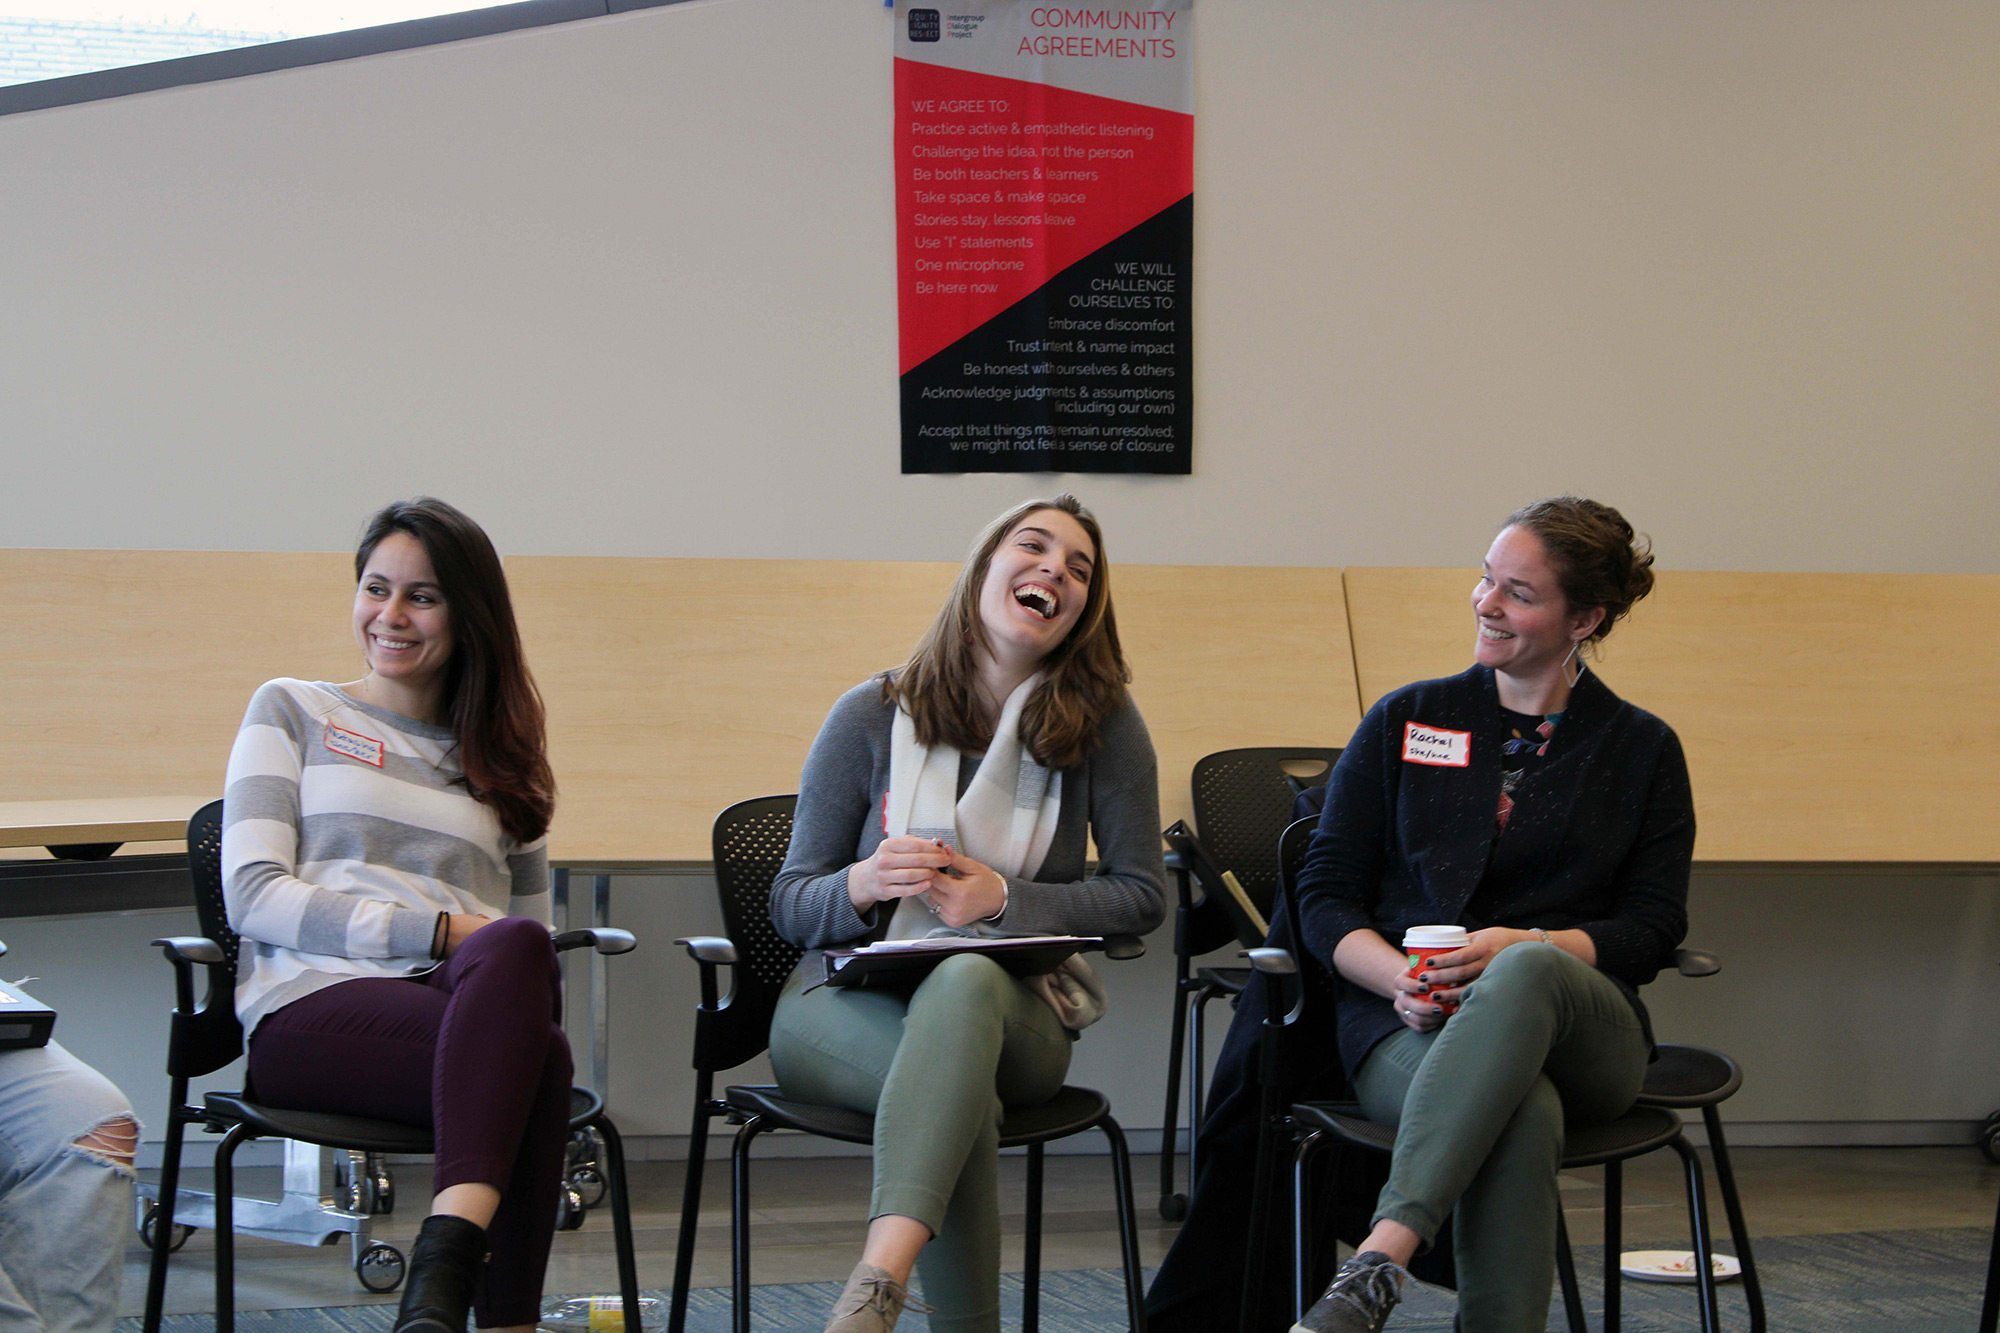 Talking about body language during facilitator training in spring 2020. (L to R) Natasha Steinhall '14; Jazlin Gomez Garner '16, MPA '18; Rachel Sumner PhD '15